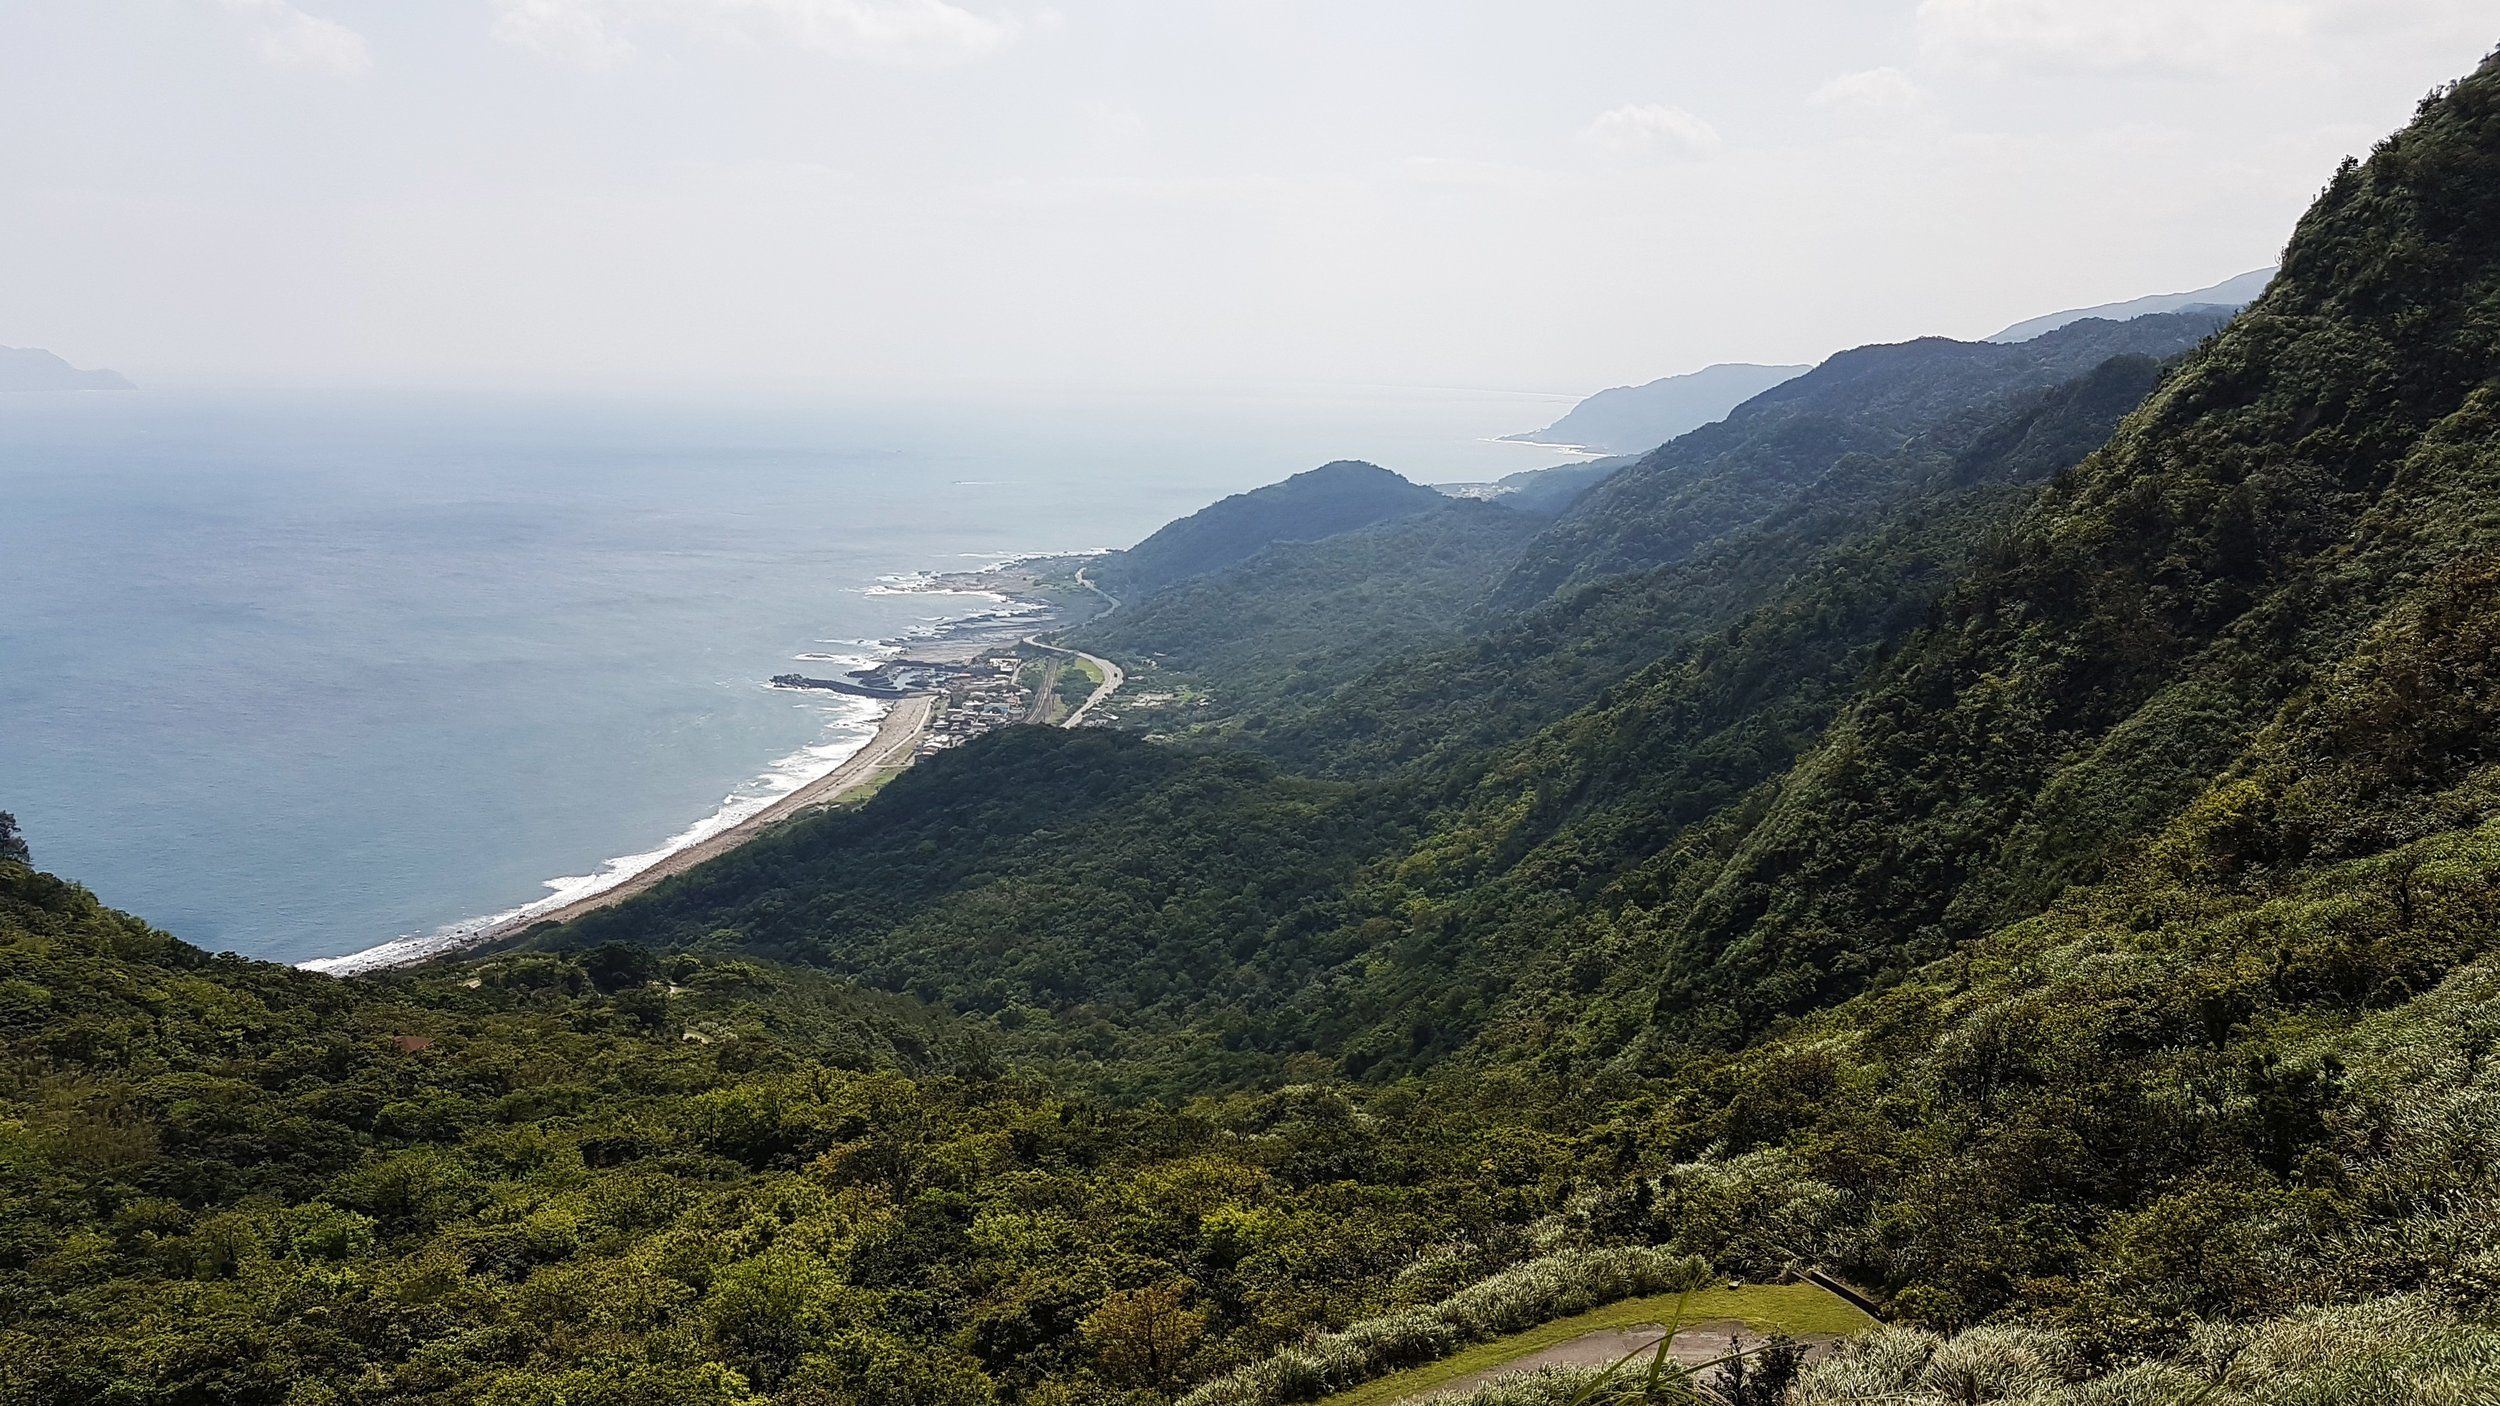 The Yilan Coast from the Caoling Historic Trail. Mt Caoling is on the right.